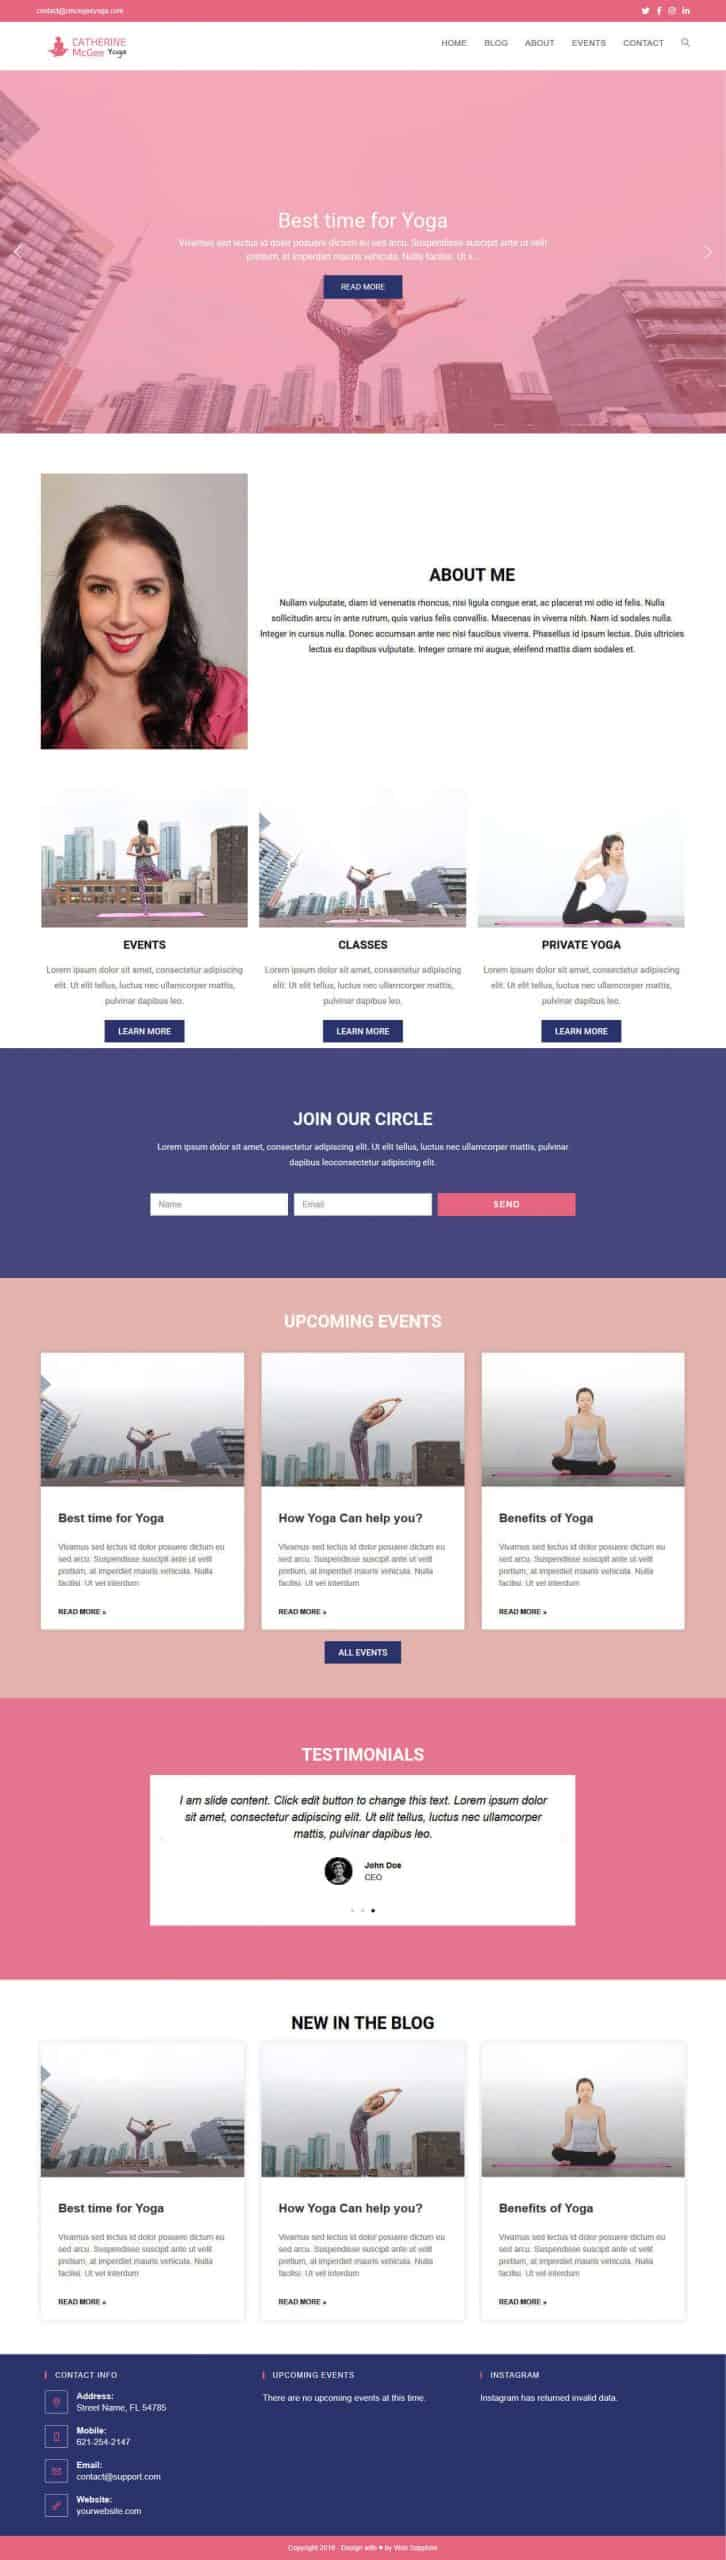 Catherine McGee Yoga Studio Website Full Screen Mock-up Design by Web Sapphire